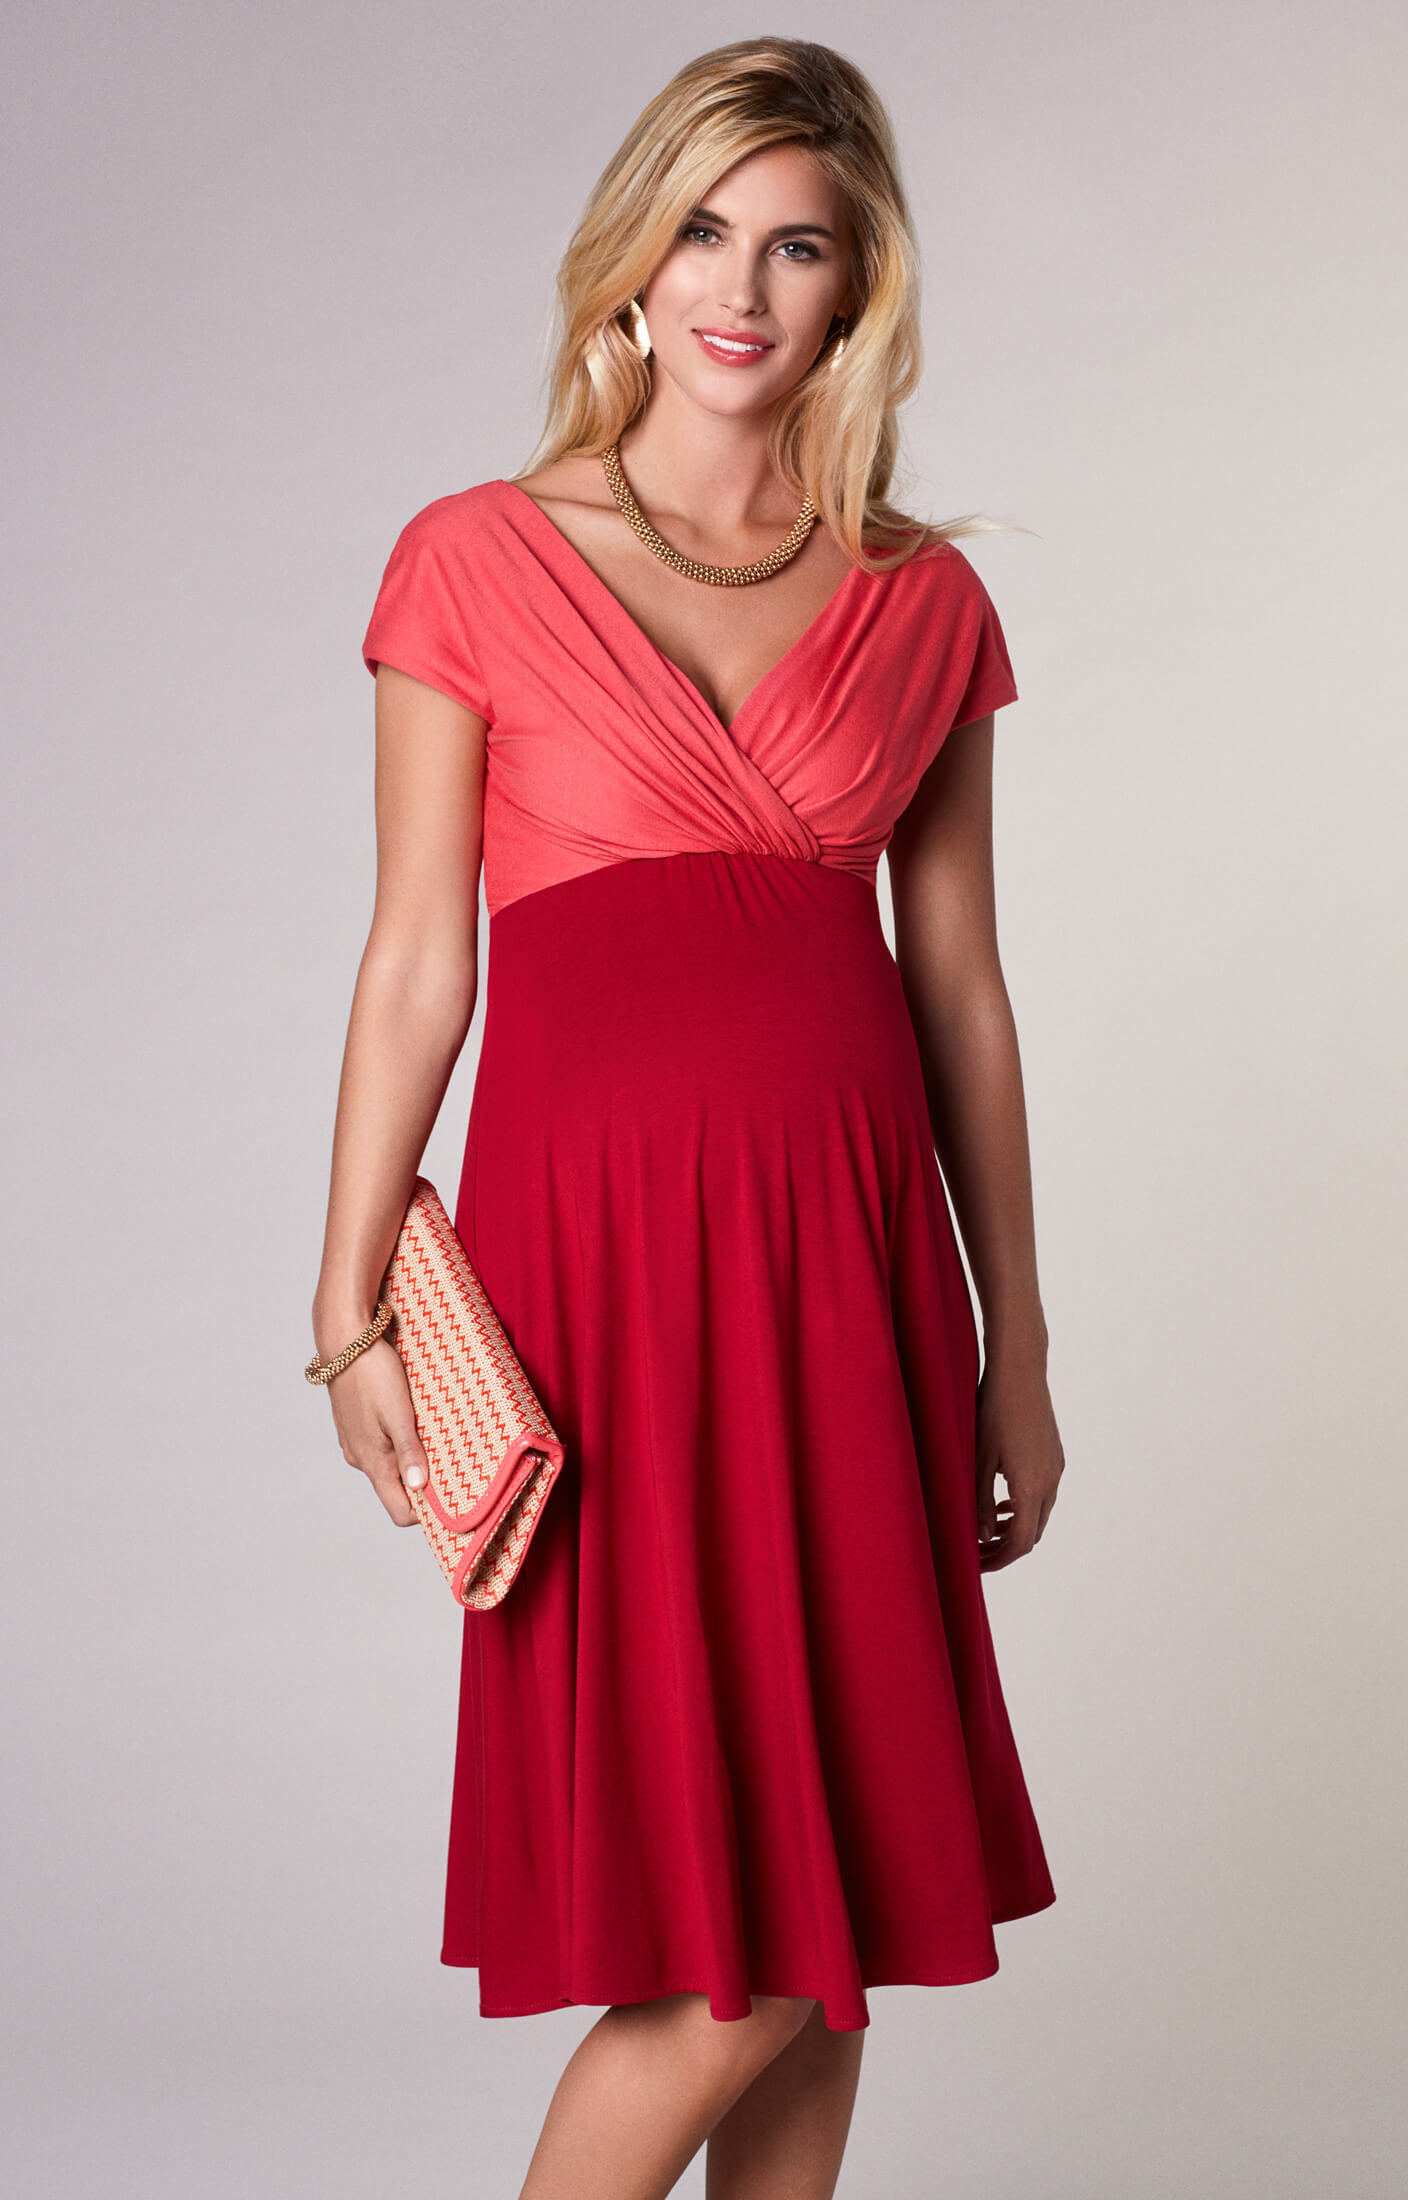 Wedding Guest Maternity Dresses from UK Designer Tiffany Rose